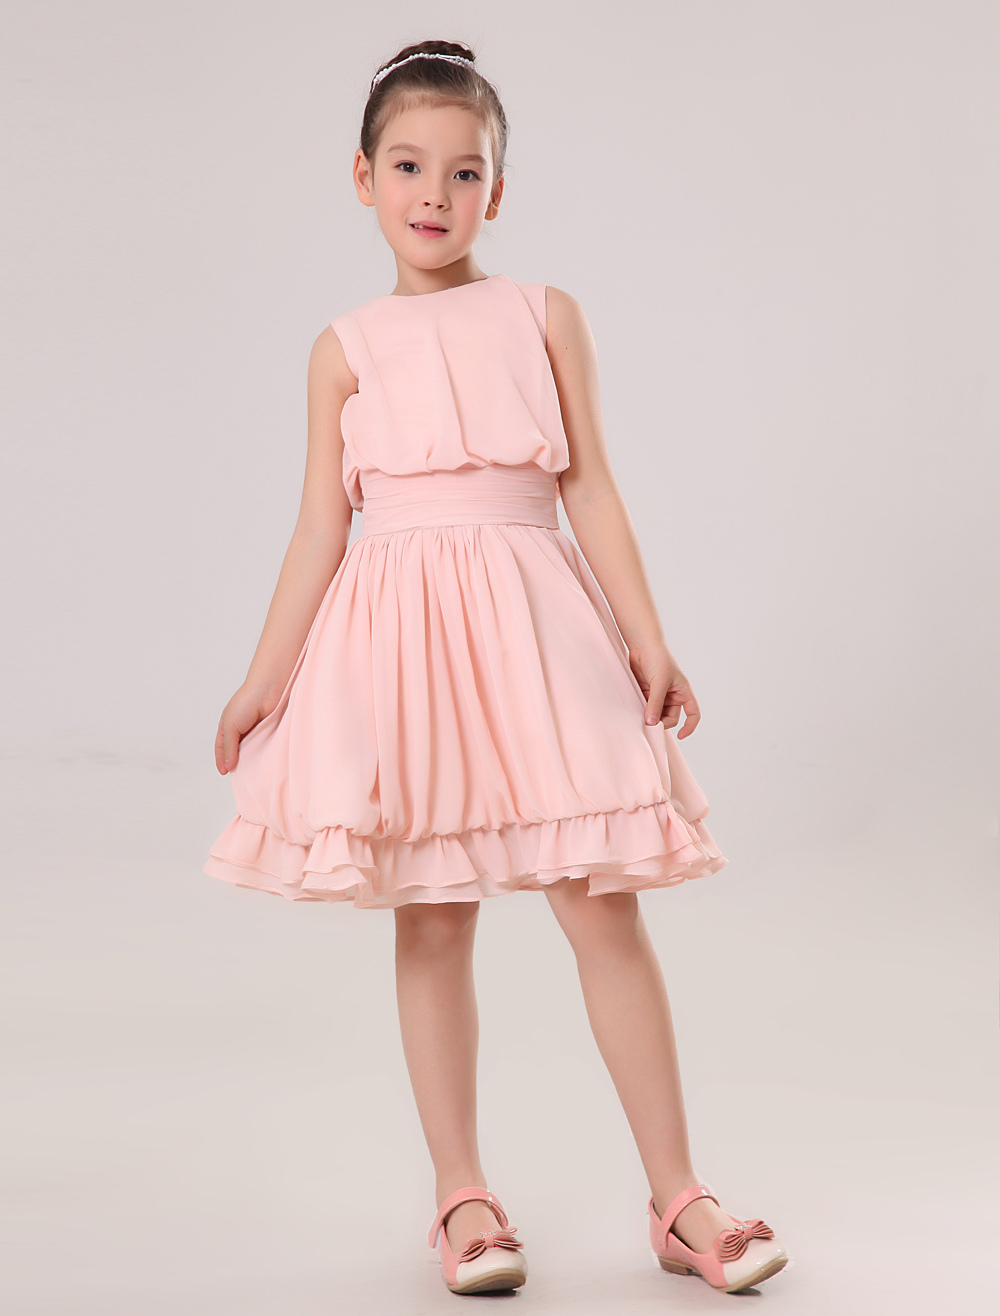 100 junior bridesmaid dresses ivory junior bridesmaid jr bridesmaid dresses jr bridesmaid gowns ombrellifo Images